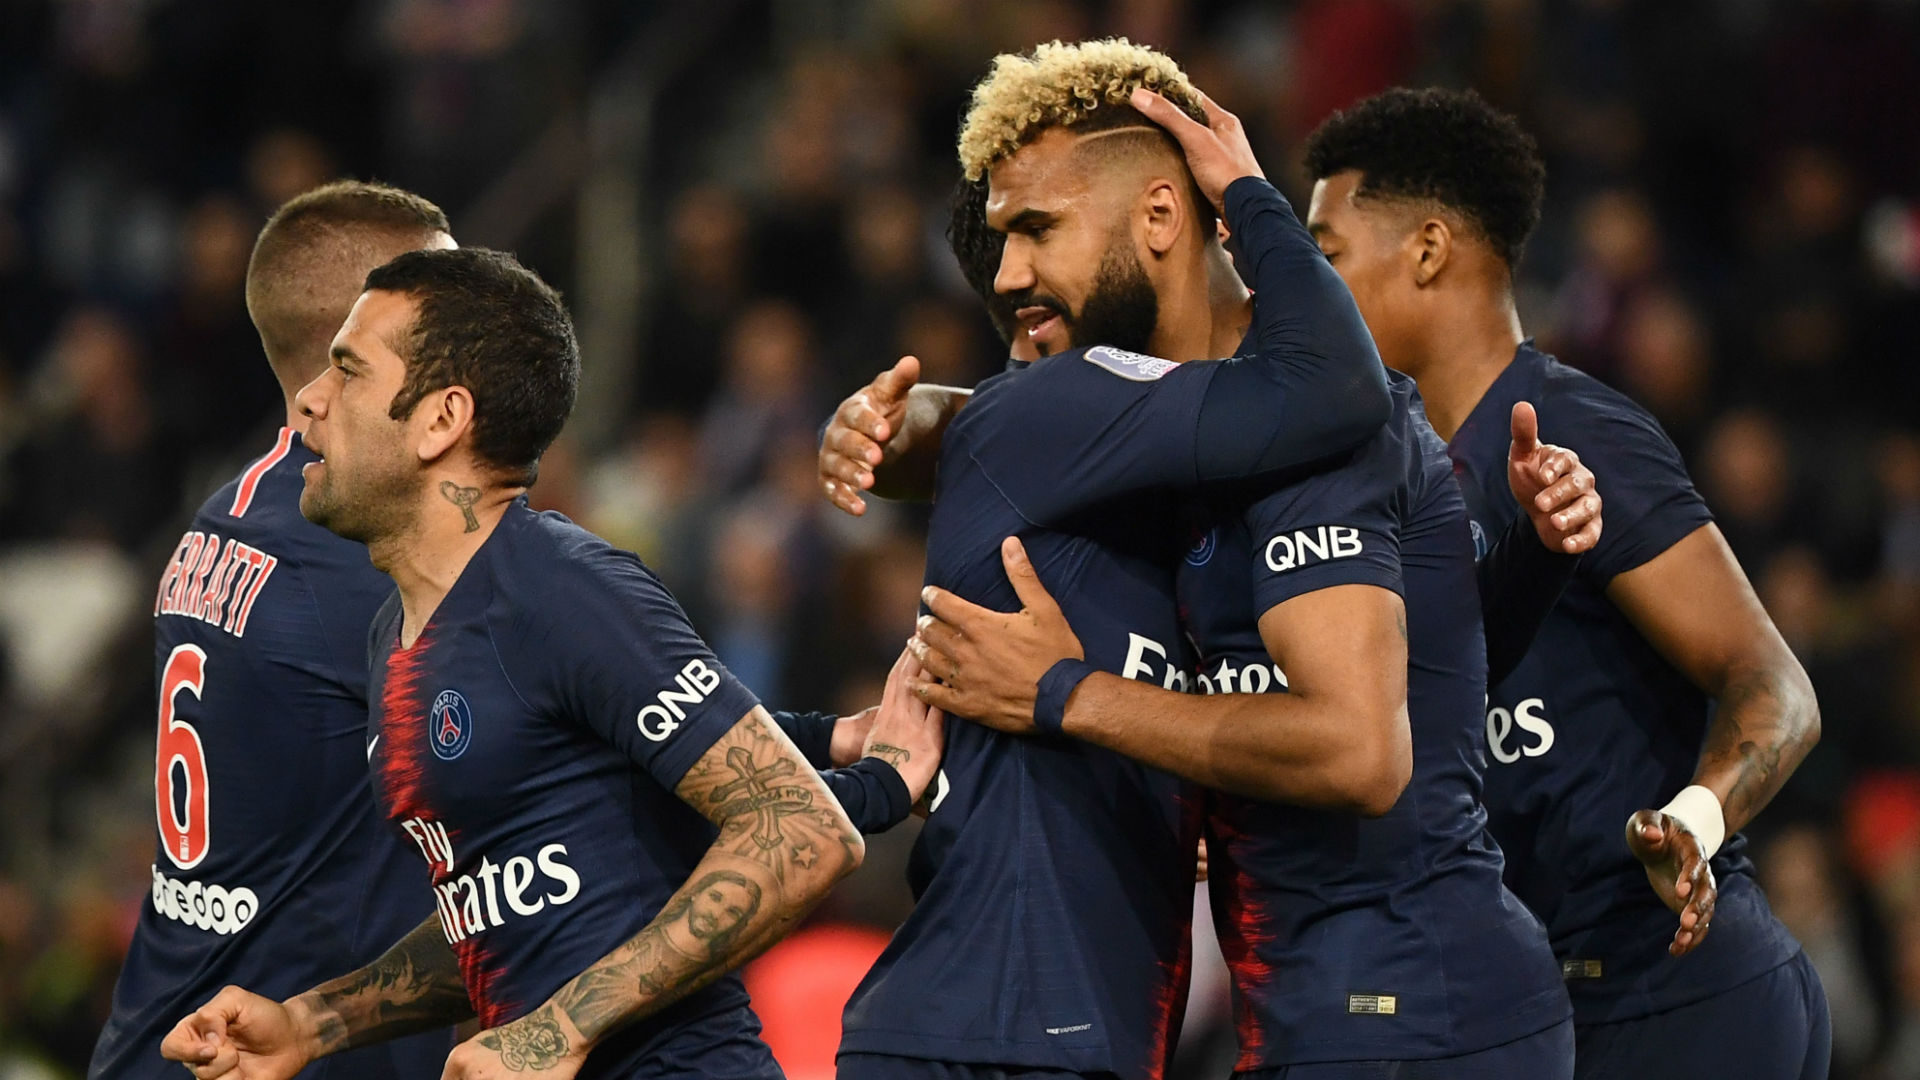 'We get on very well' - Choupo-Moting on his relationship with Mbappe, Neymar and other PSG stars